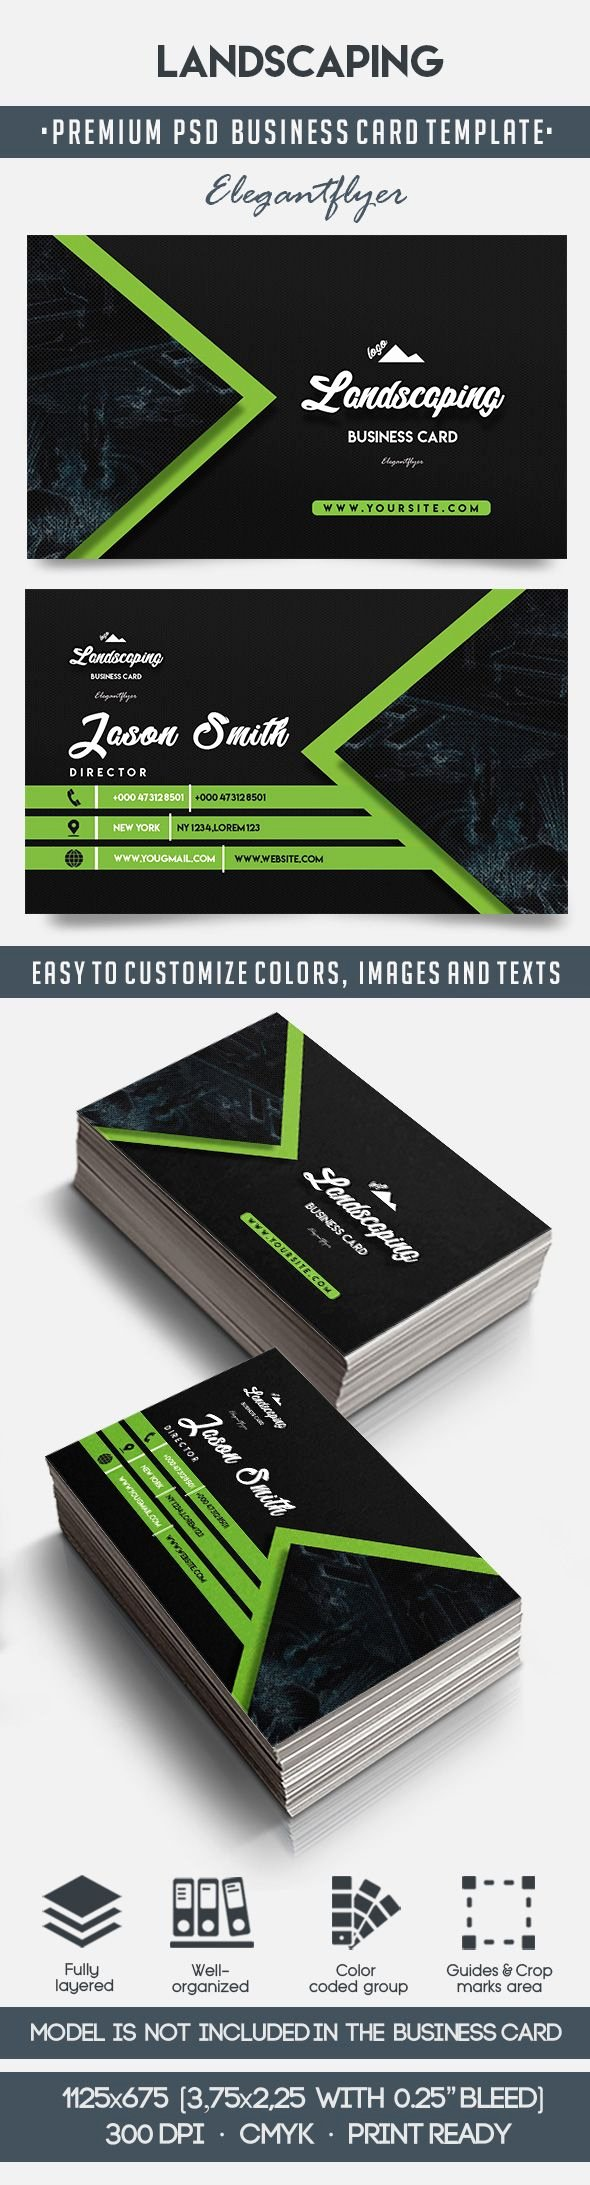 Landscaping Business Card Template Inspirational Landscaping – Business Card Templates Psd – by Elegantflyer